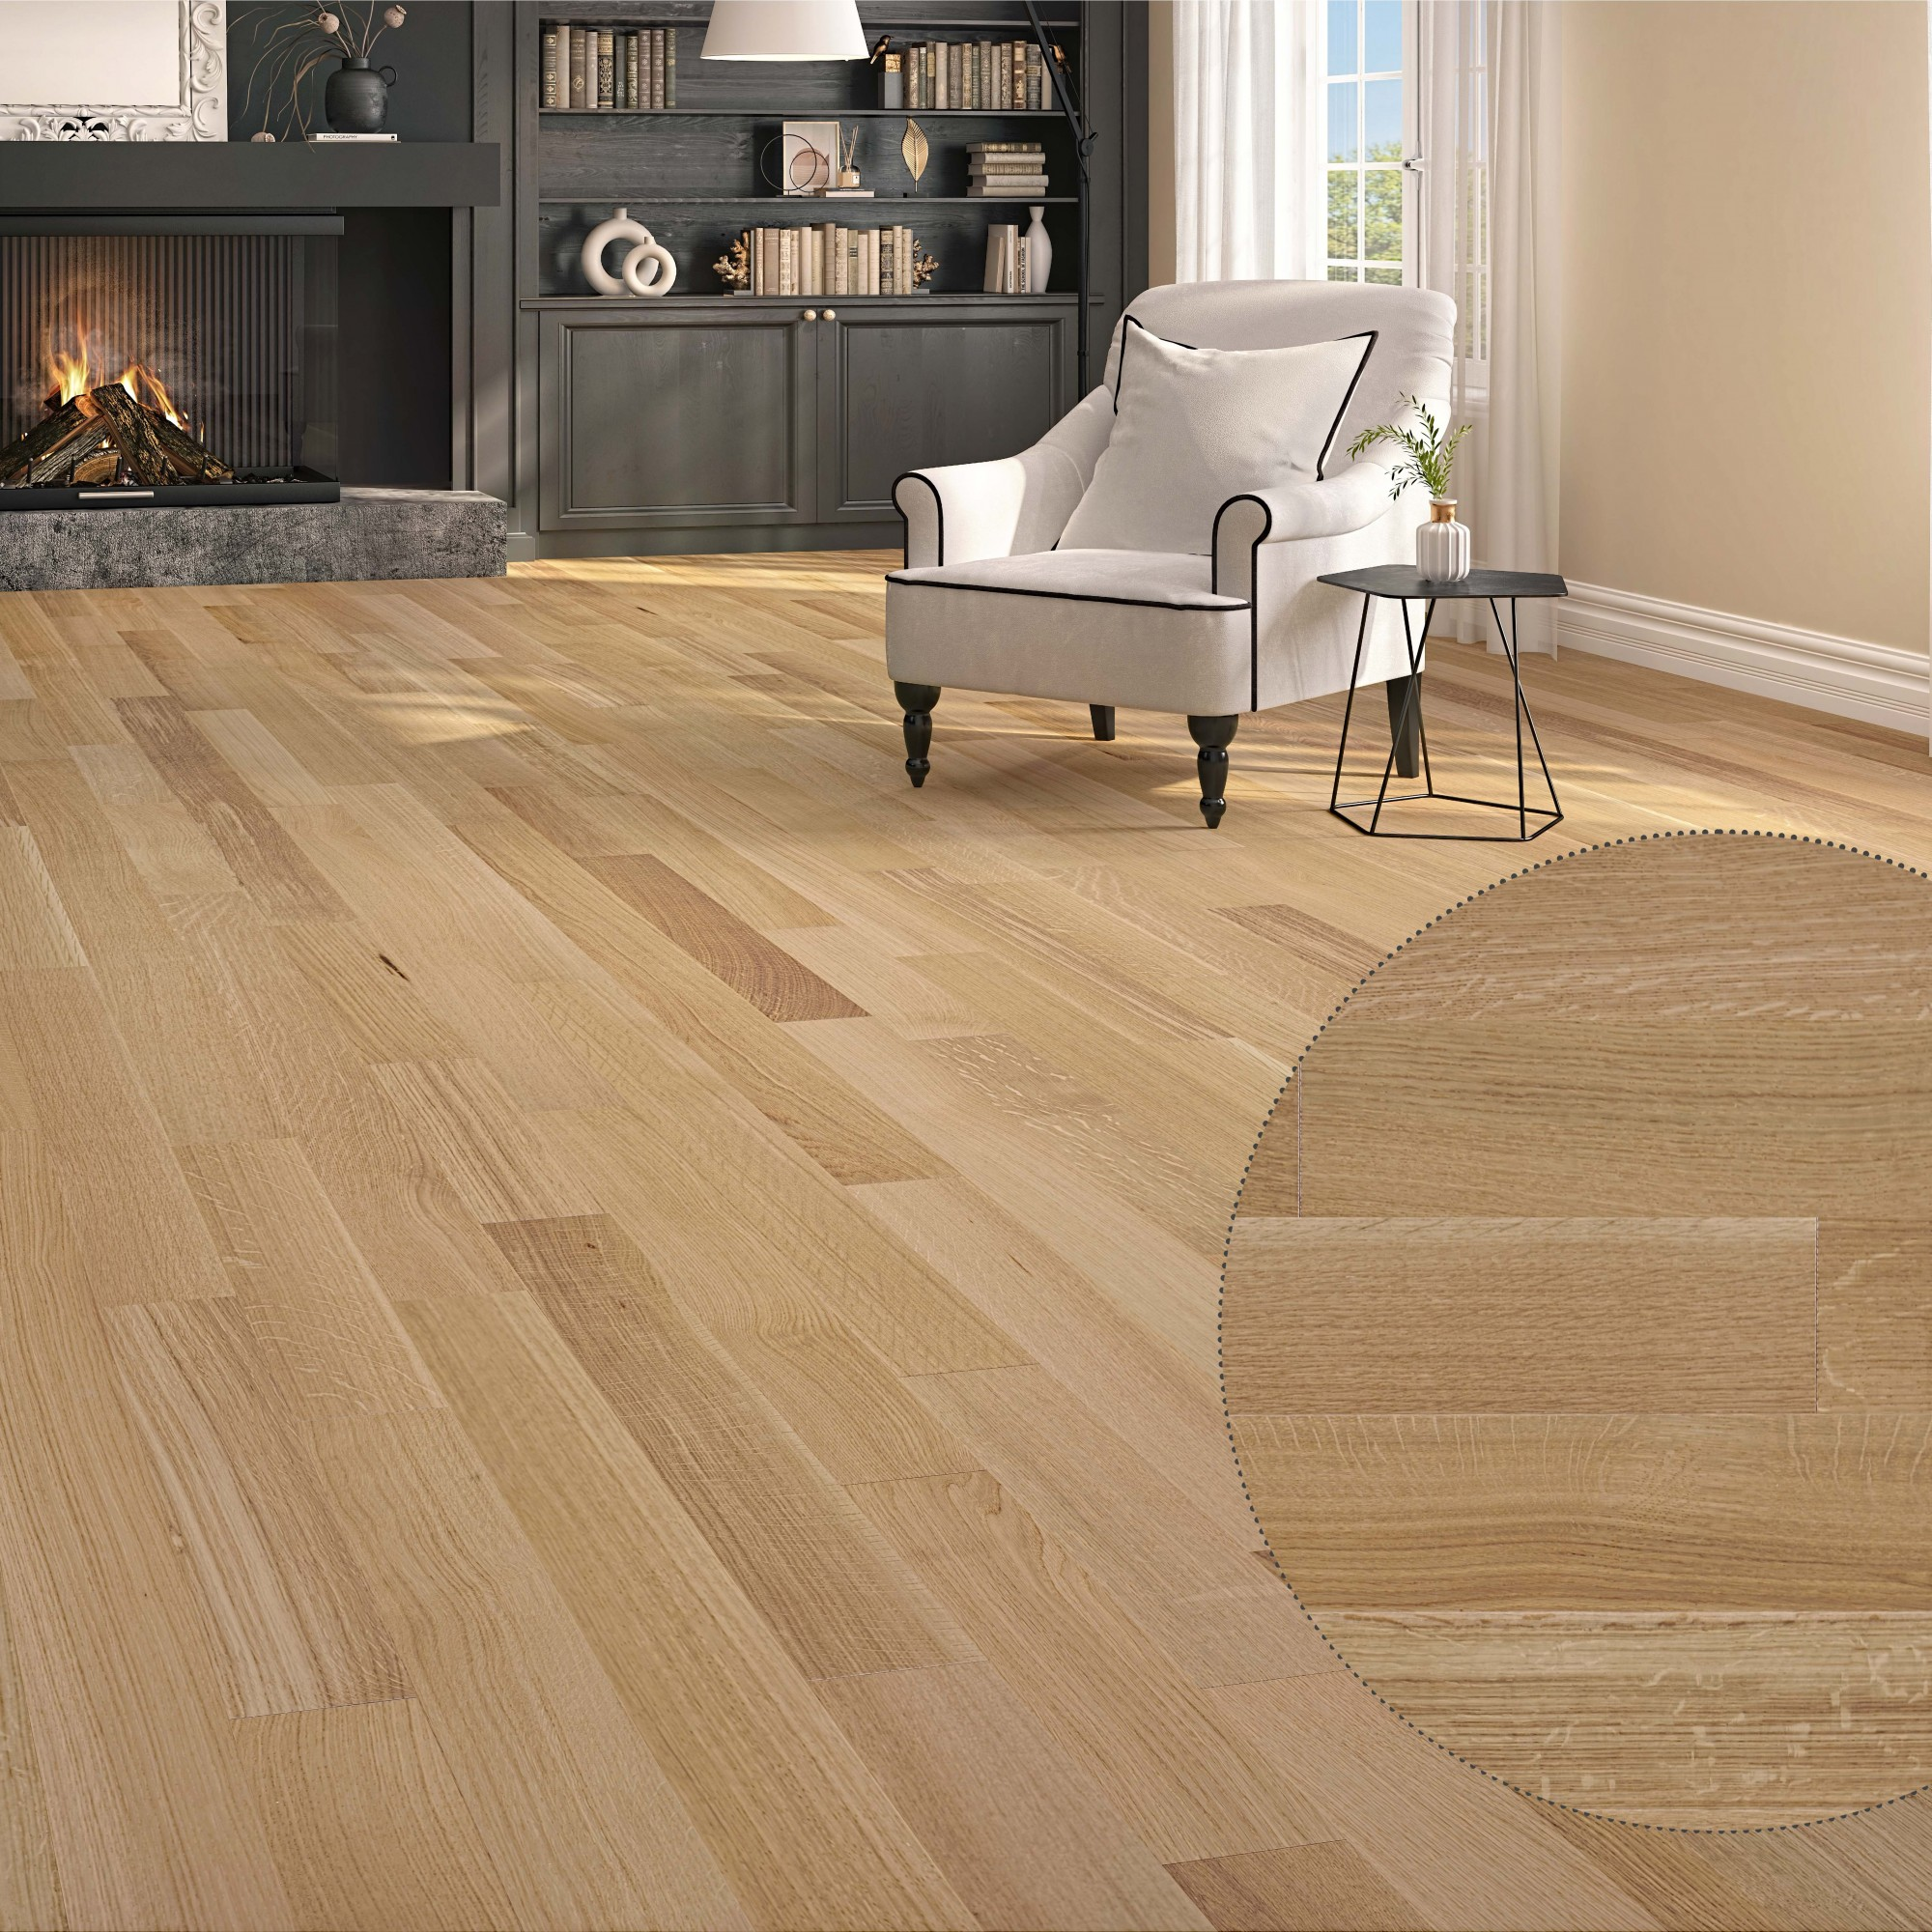 White Oak Natural Rift & Quarter Sawn